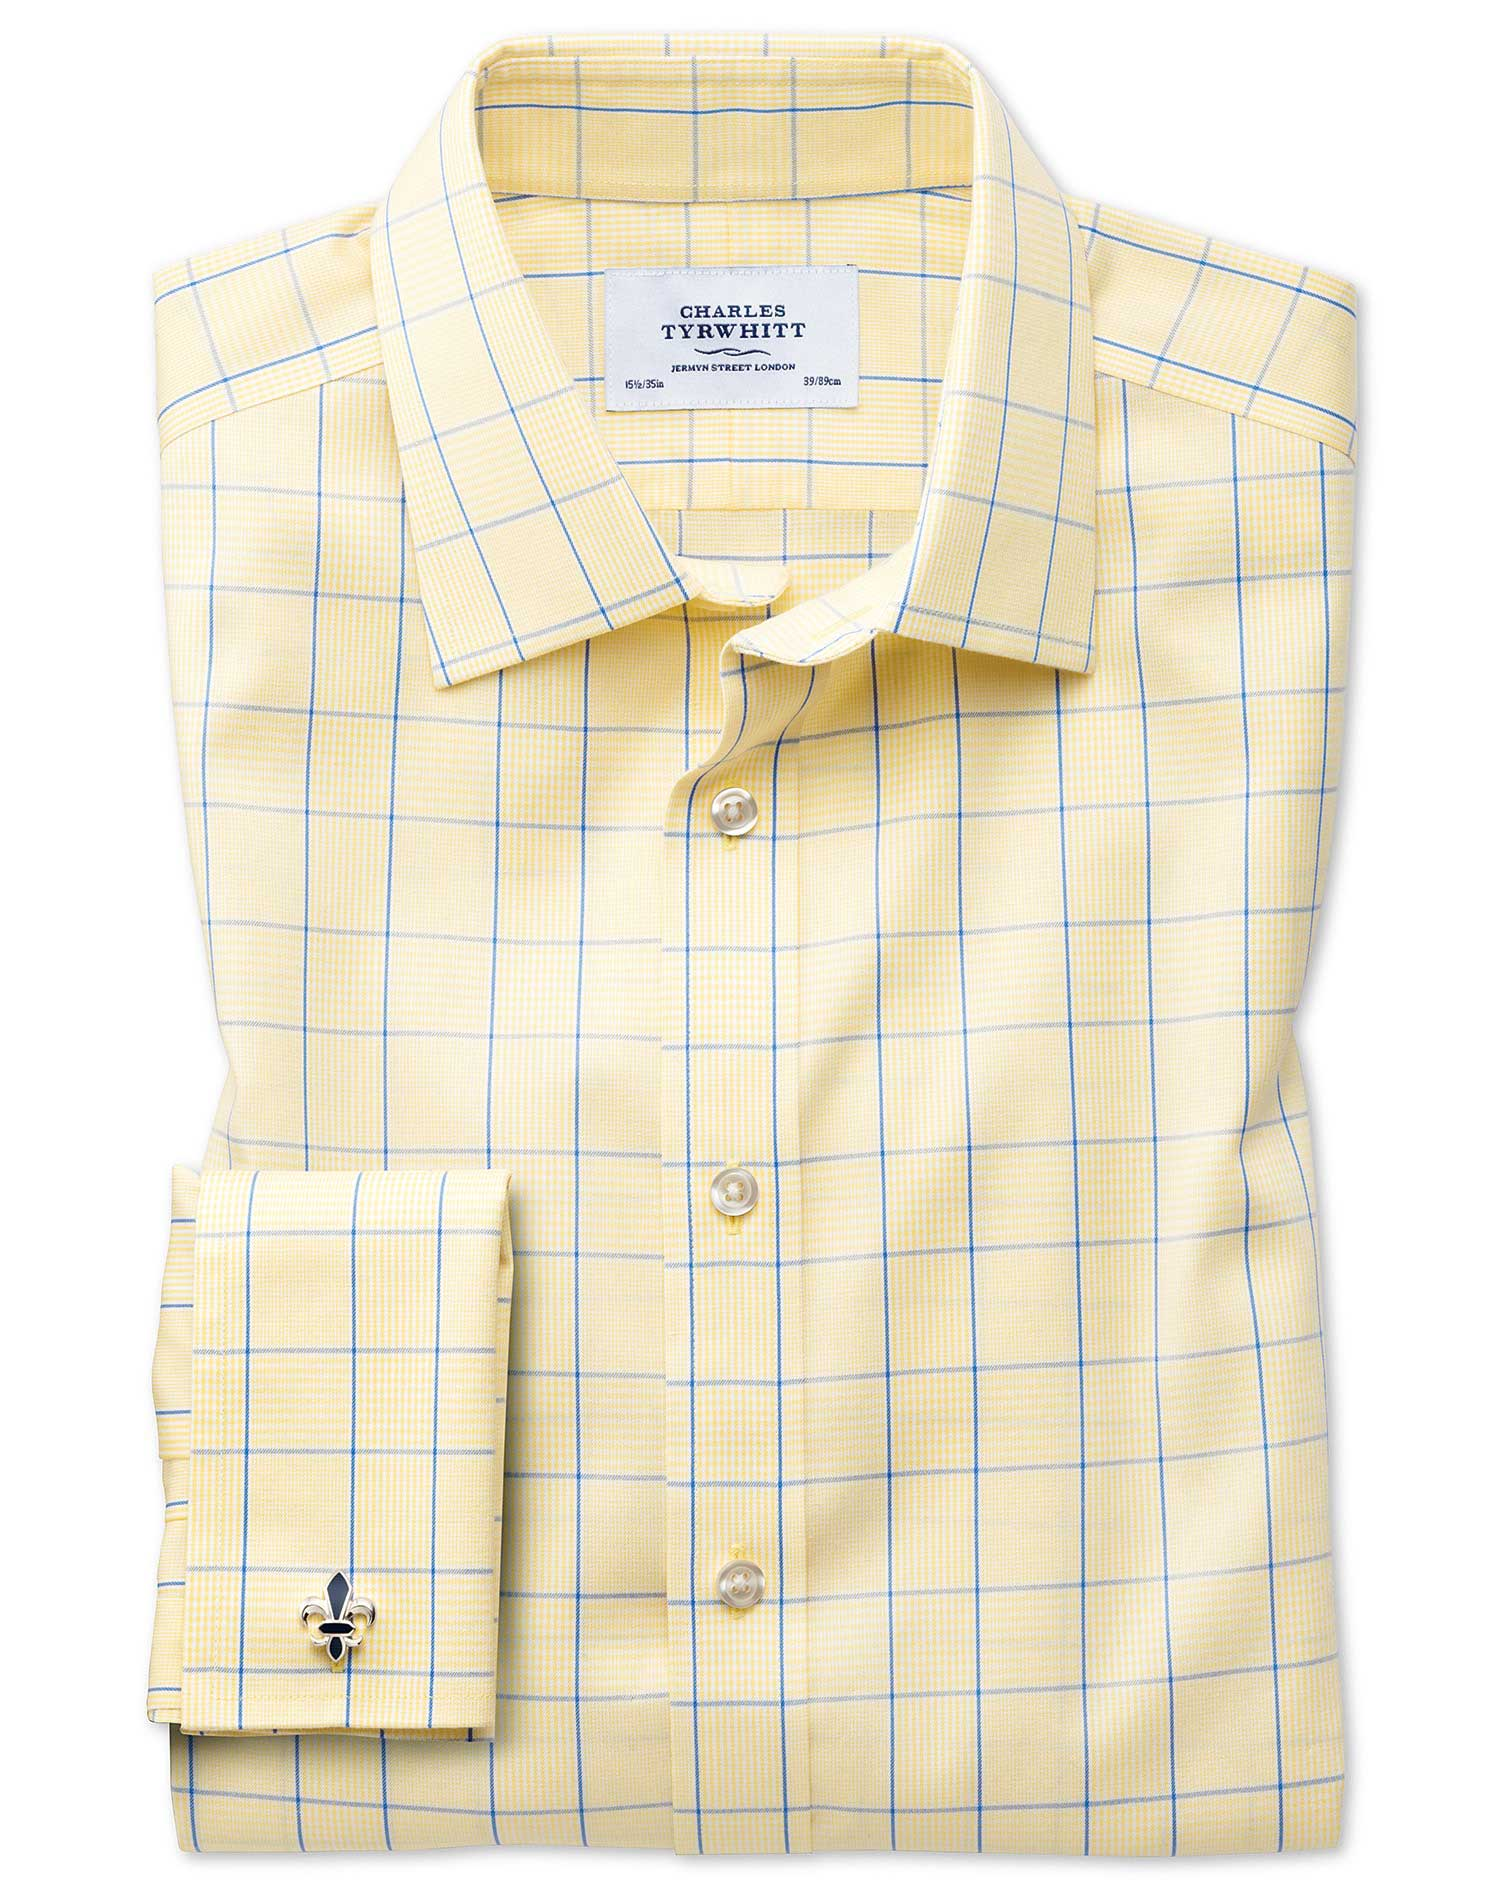 Classic Fit Non-Iron Prince Of Wales Yellow and Royal Blue Cotton Formal Shirt Double Cuff Size 17/3